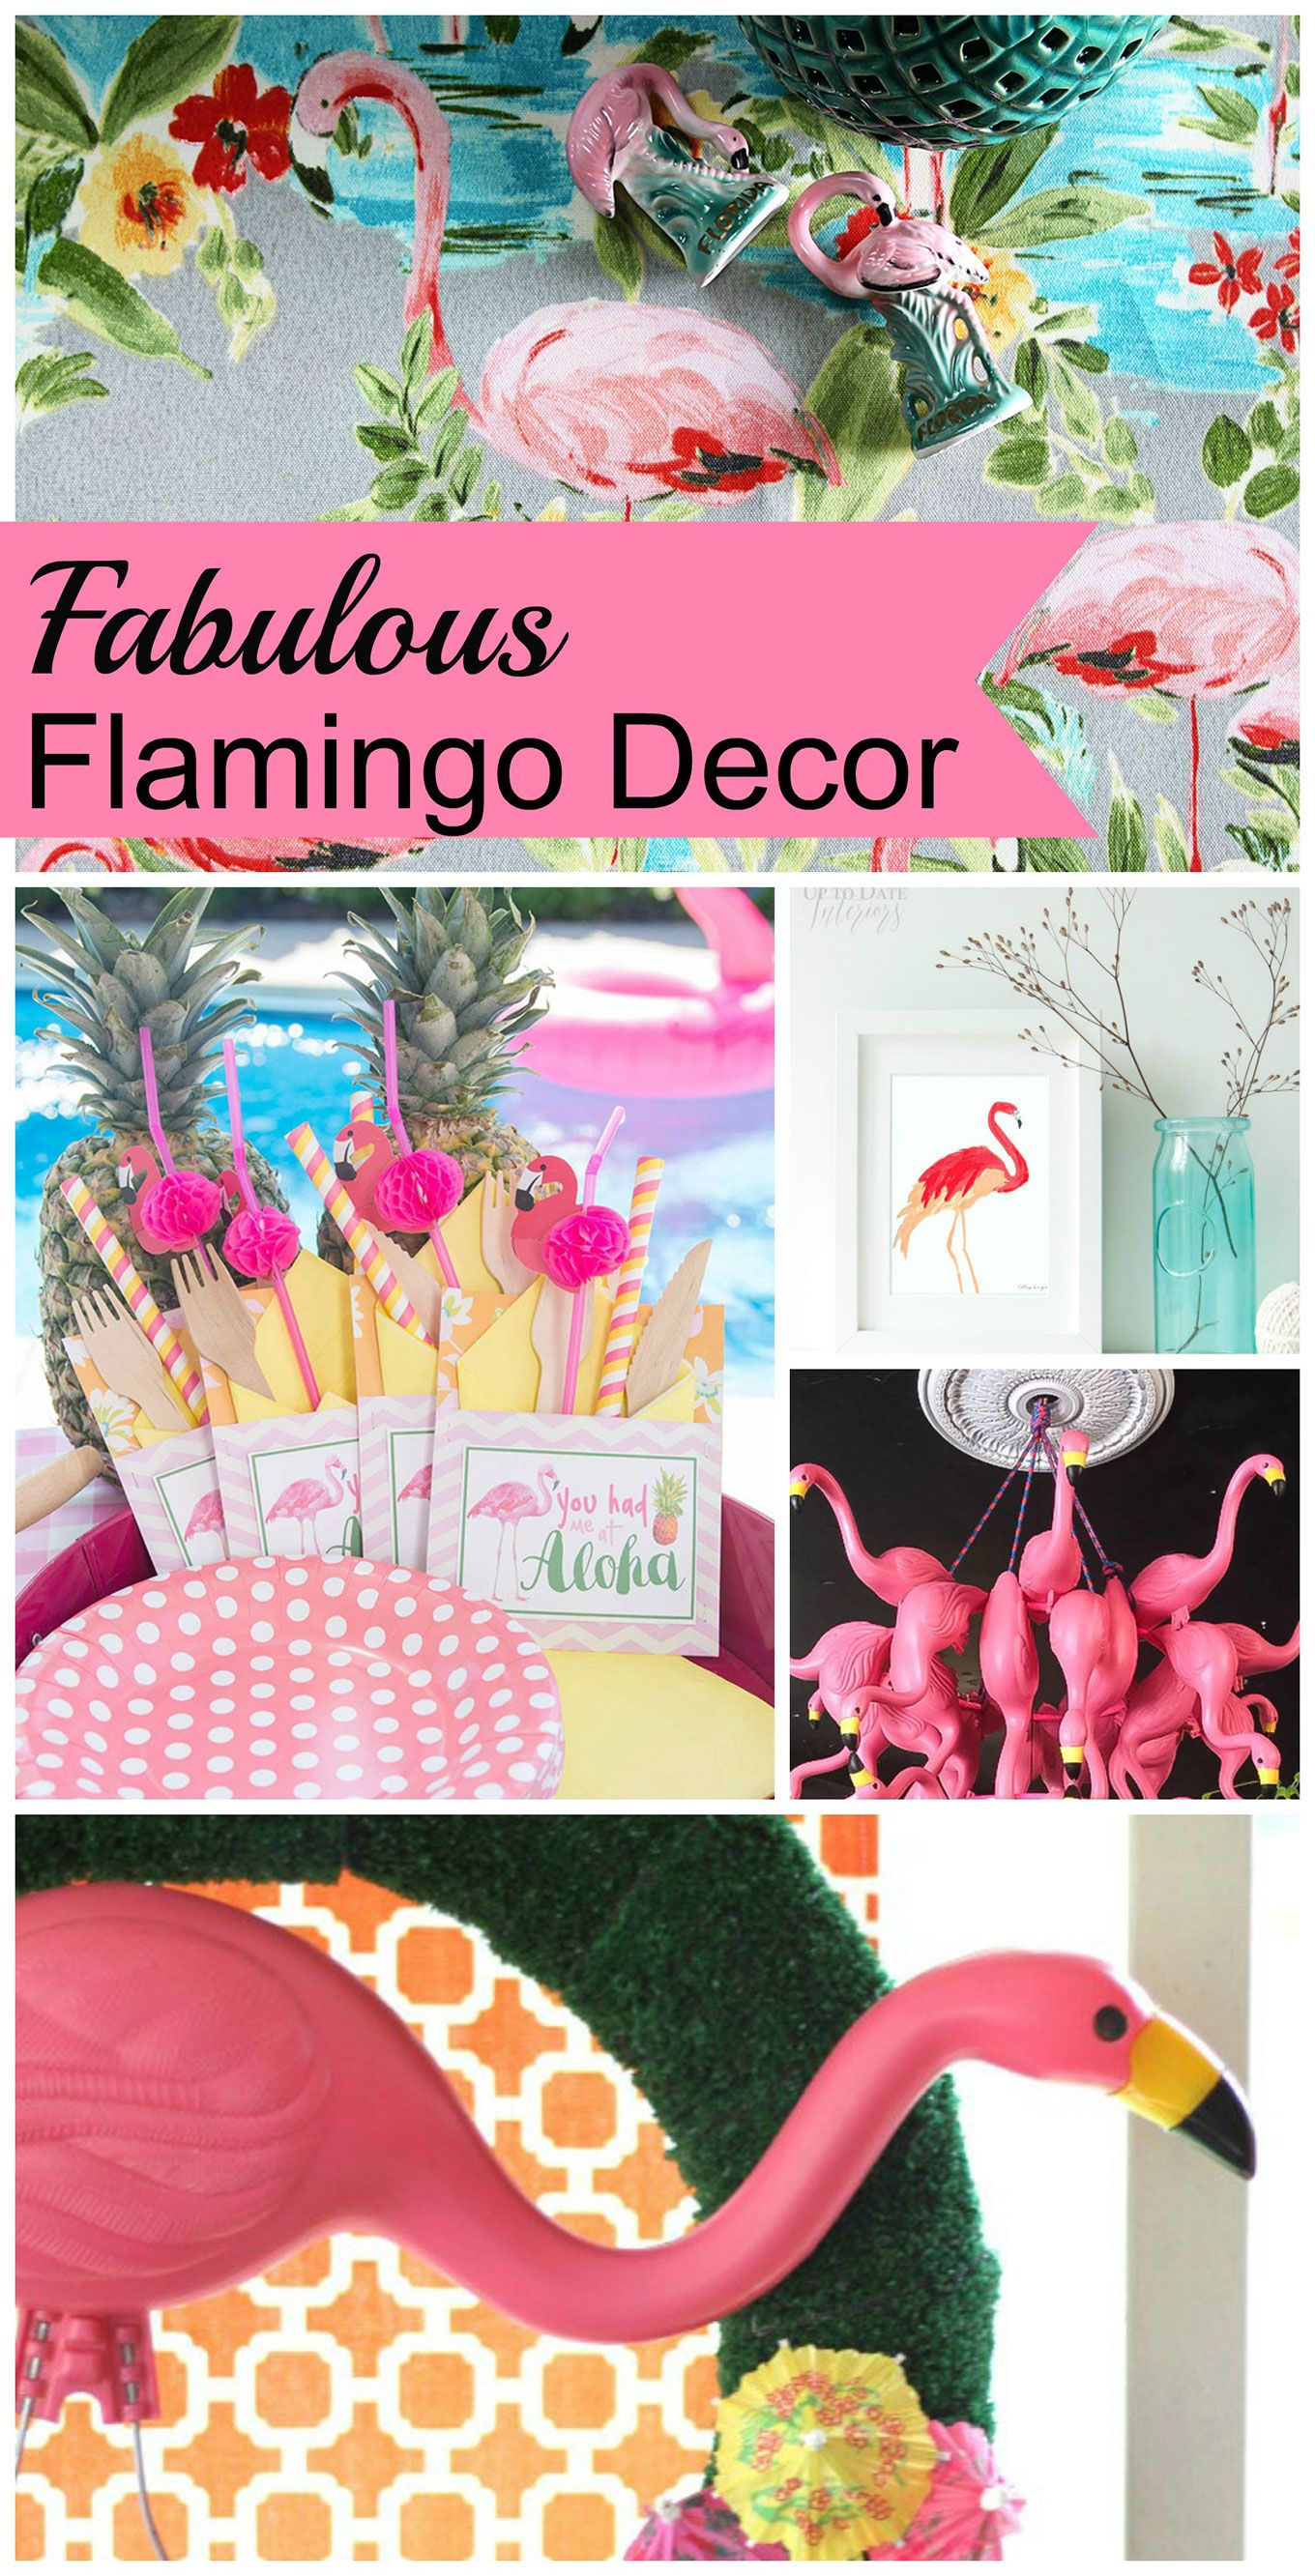 Pink Flamingo Decor And Diy Project Ideas For Slightly Kitschy Always Fun Home Is Hot Summer Patio Also